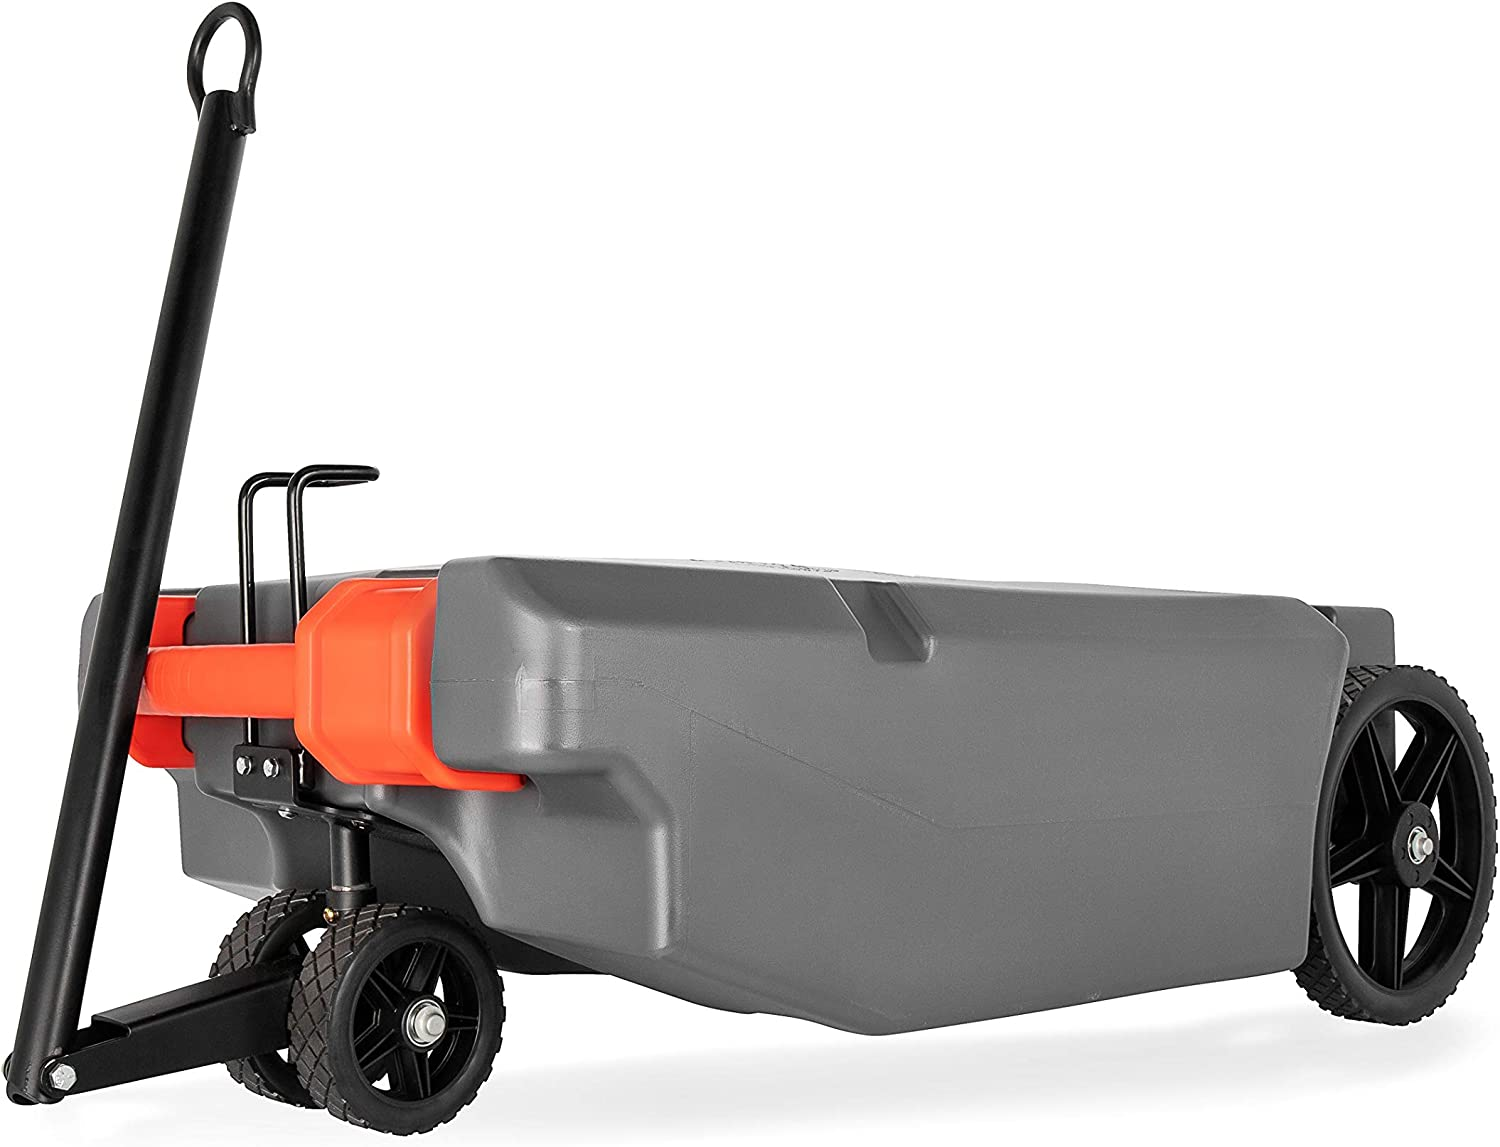 Amazon Com Camco Rv Rhino Heavy Duty 36 Gallon Portable Waste Holding Tank With Steerable Wheels Includes Hoses And Accessories 39007 Automotive